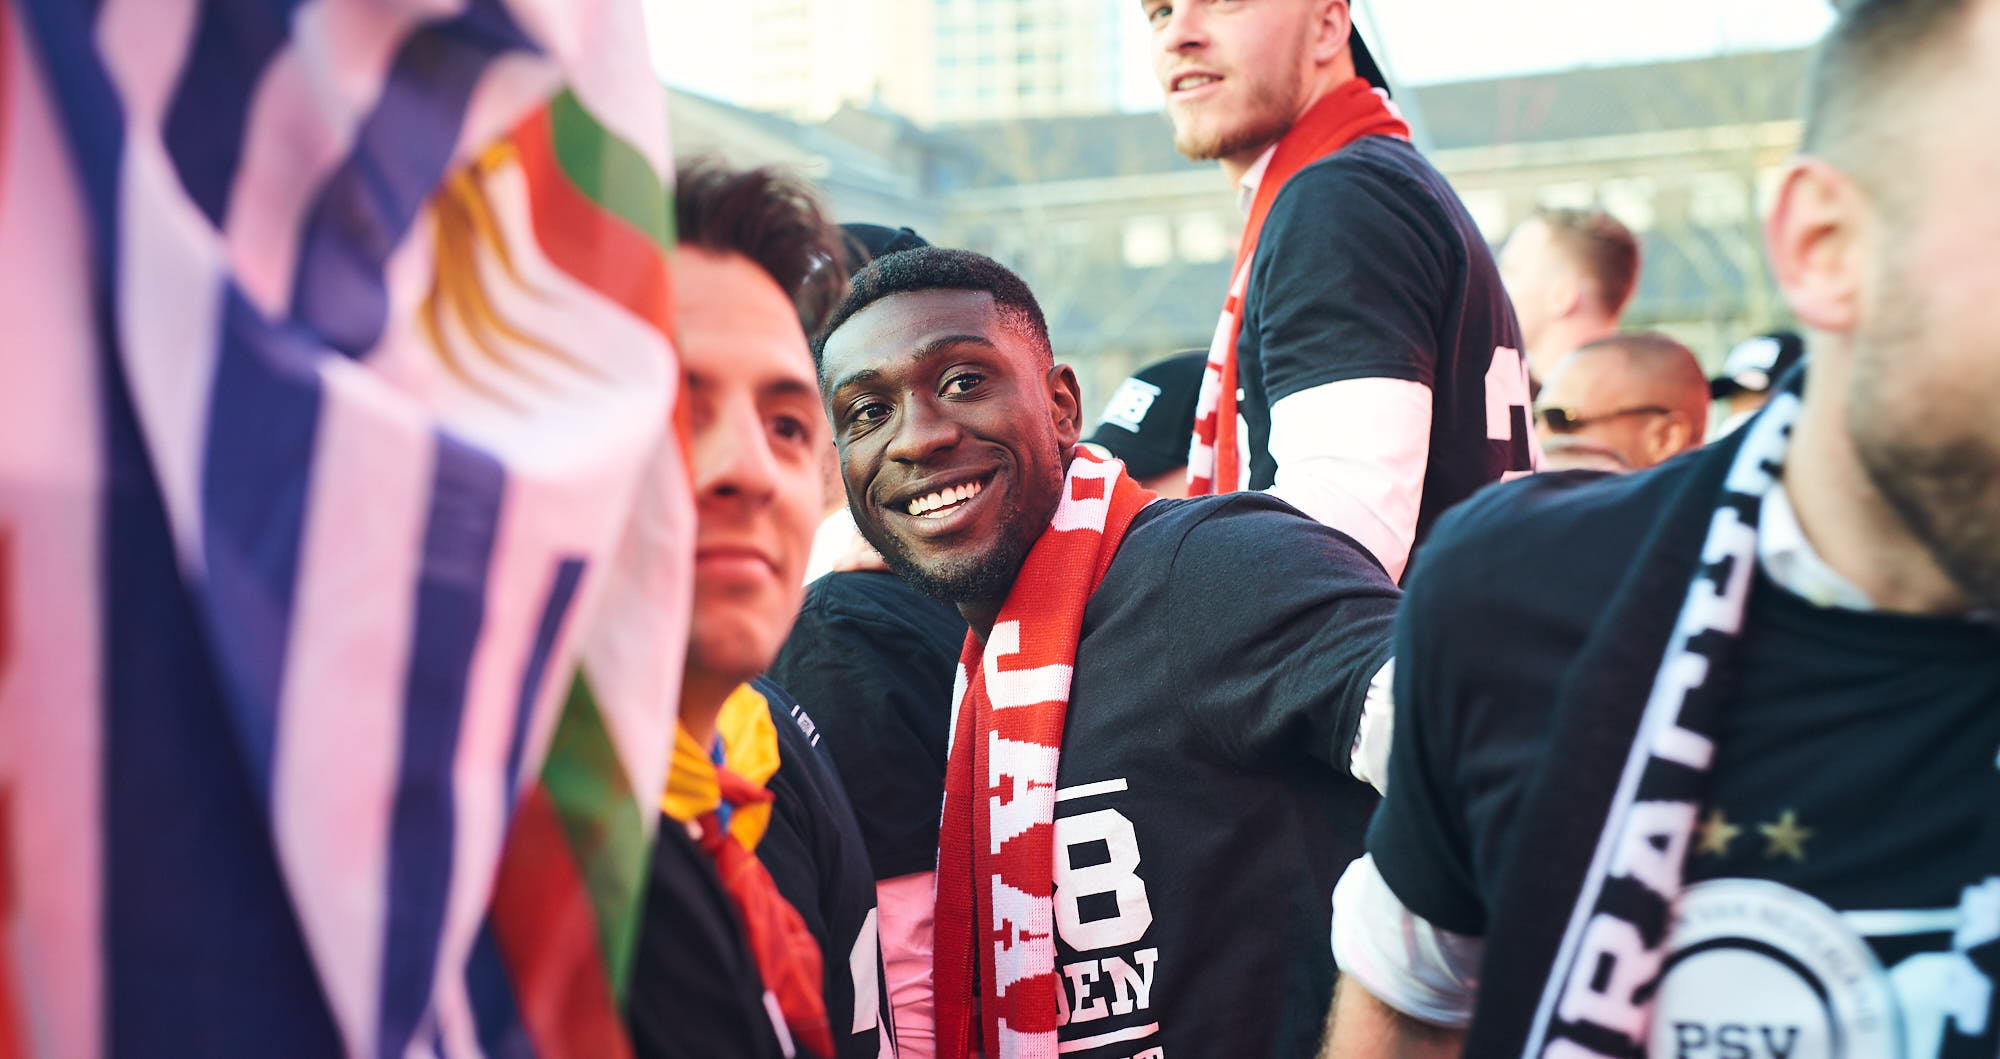 Derrick Luckassen during PSV Eindhoven's title celebrations